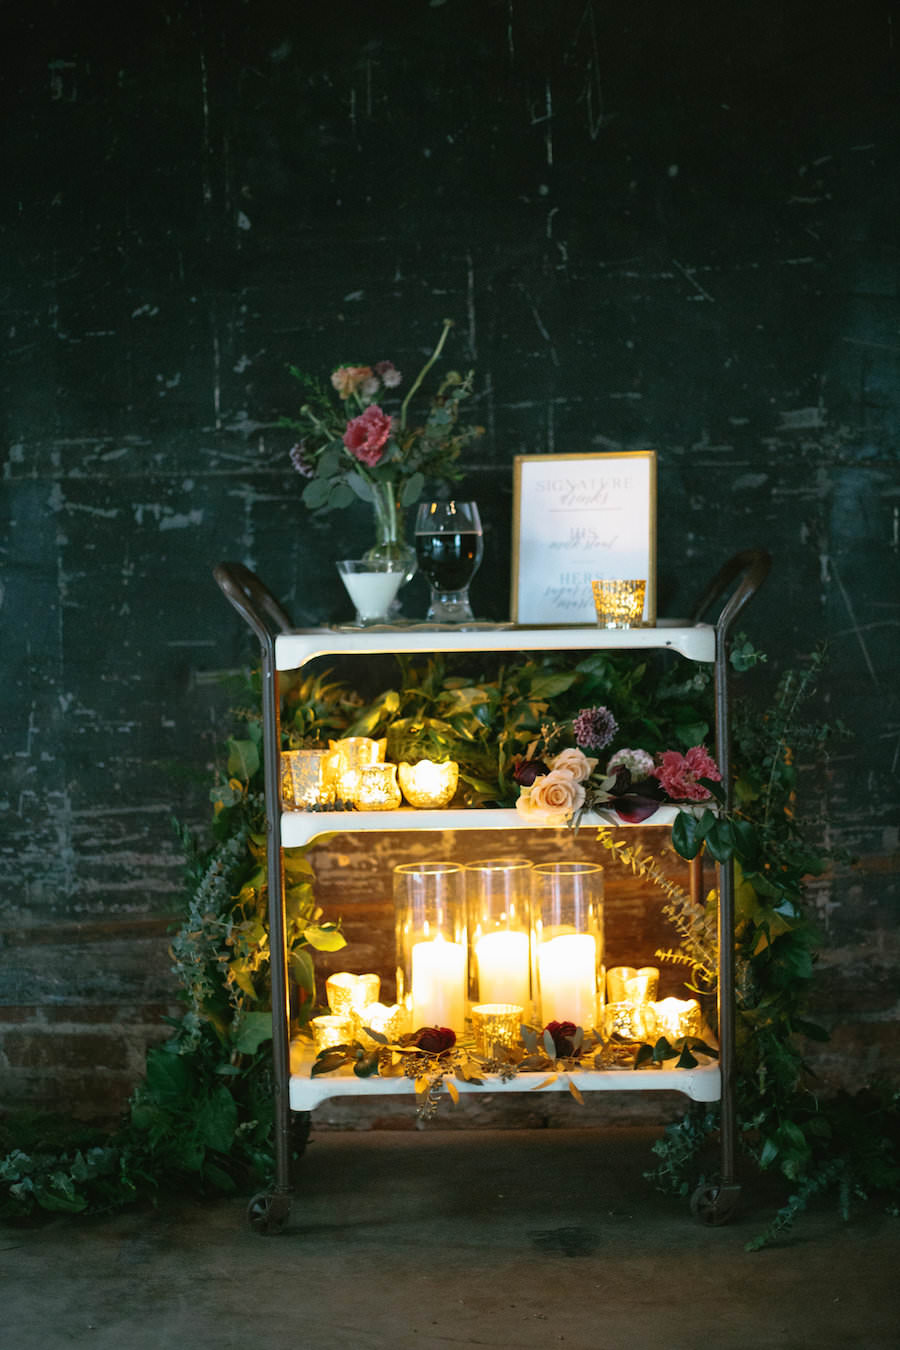 Candlelit Wedding Bar Cart with Greenery Decor and Roses | Modern Wedding Signature Drink Bar Cart with Menu | His and Her, Bride and Groom Signature Wedding Cocktails | Tampa Bay Wedding Planner Glitz Events